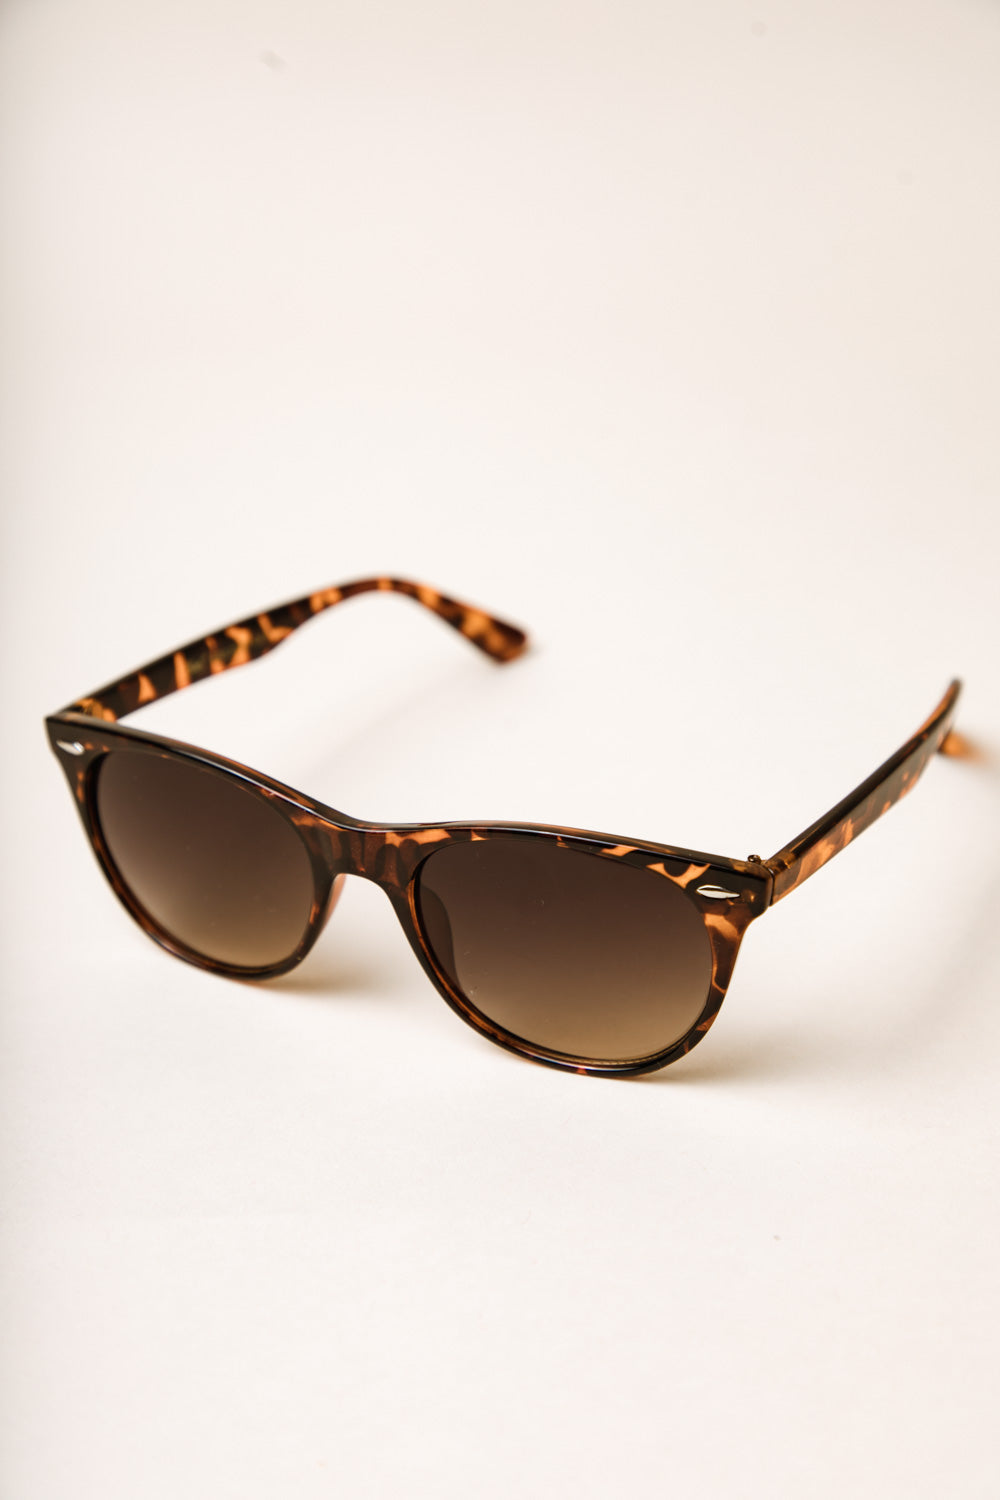 Hollywood Lights Sunglasses in Leopard